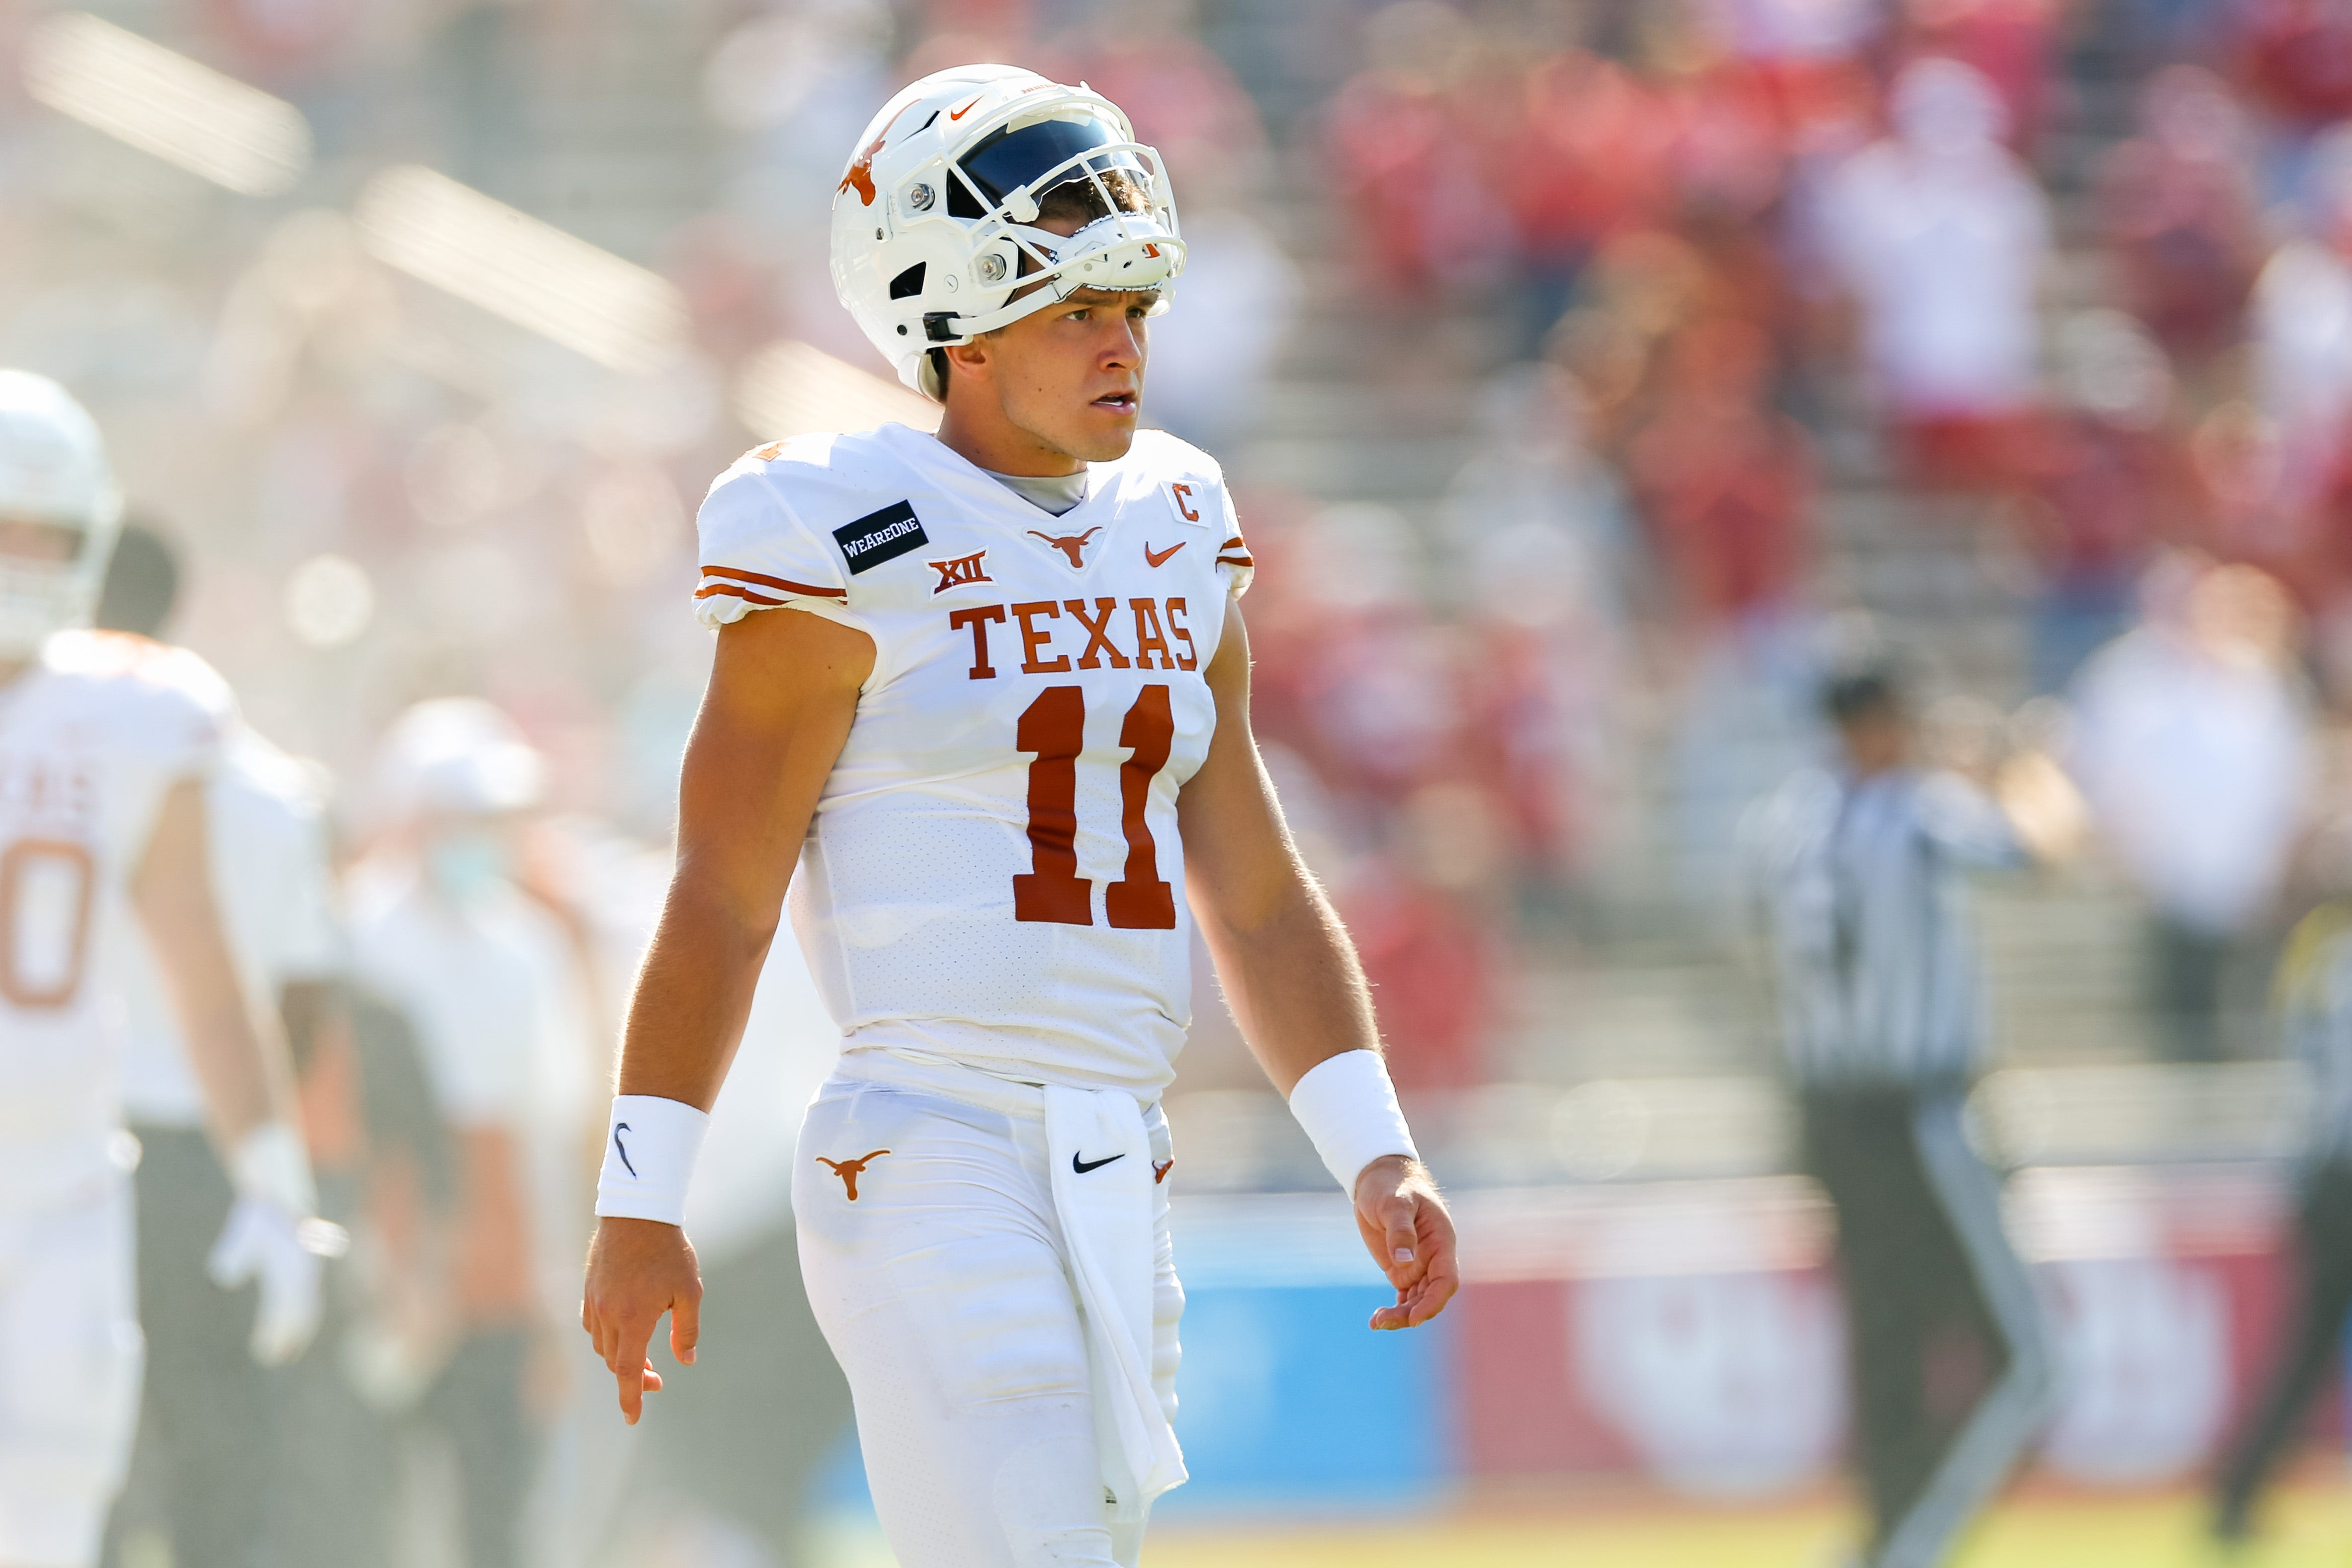 After a 'misunderstanding' in Dallas, Texas Longhorns QB Sam Ehlinger explains why he stayed for 'The Eyes of Texas'